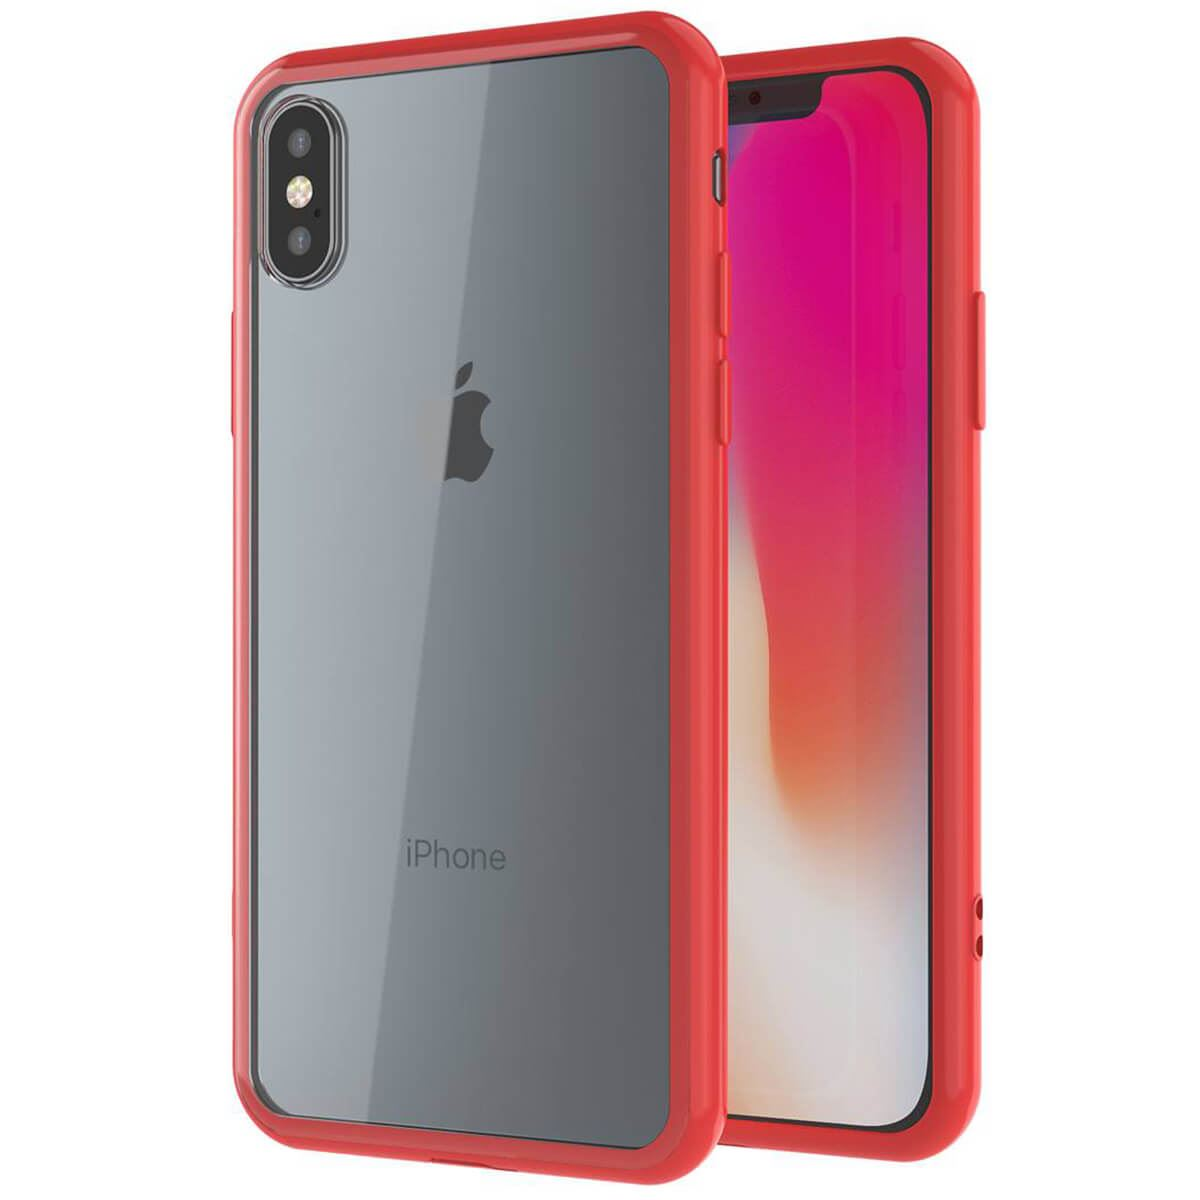 Shockproof-Case-For-Apple-iPhone-X-8-7-Plus-6-5s-Se-Clear-Slim-Bumper-TPU-Cover thumbnail 12